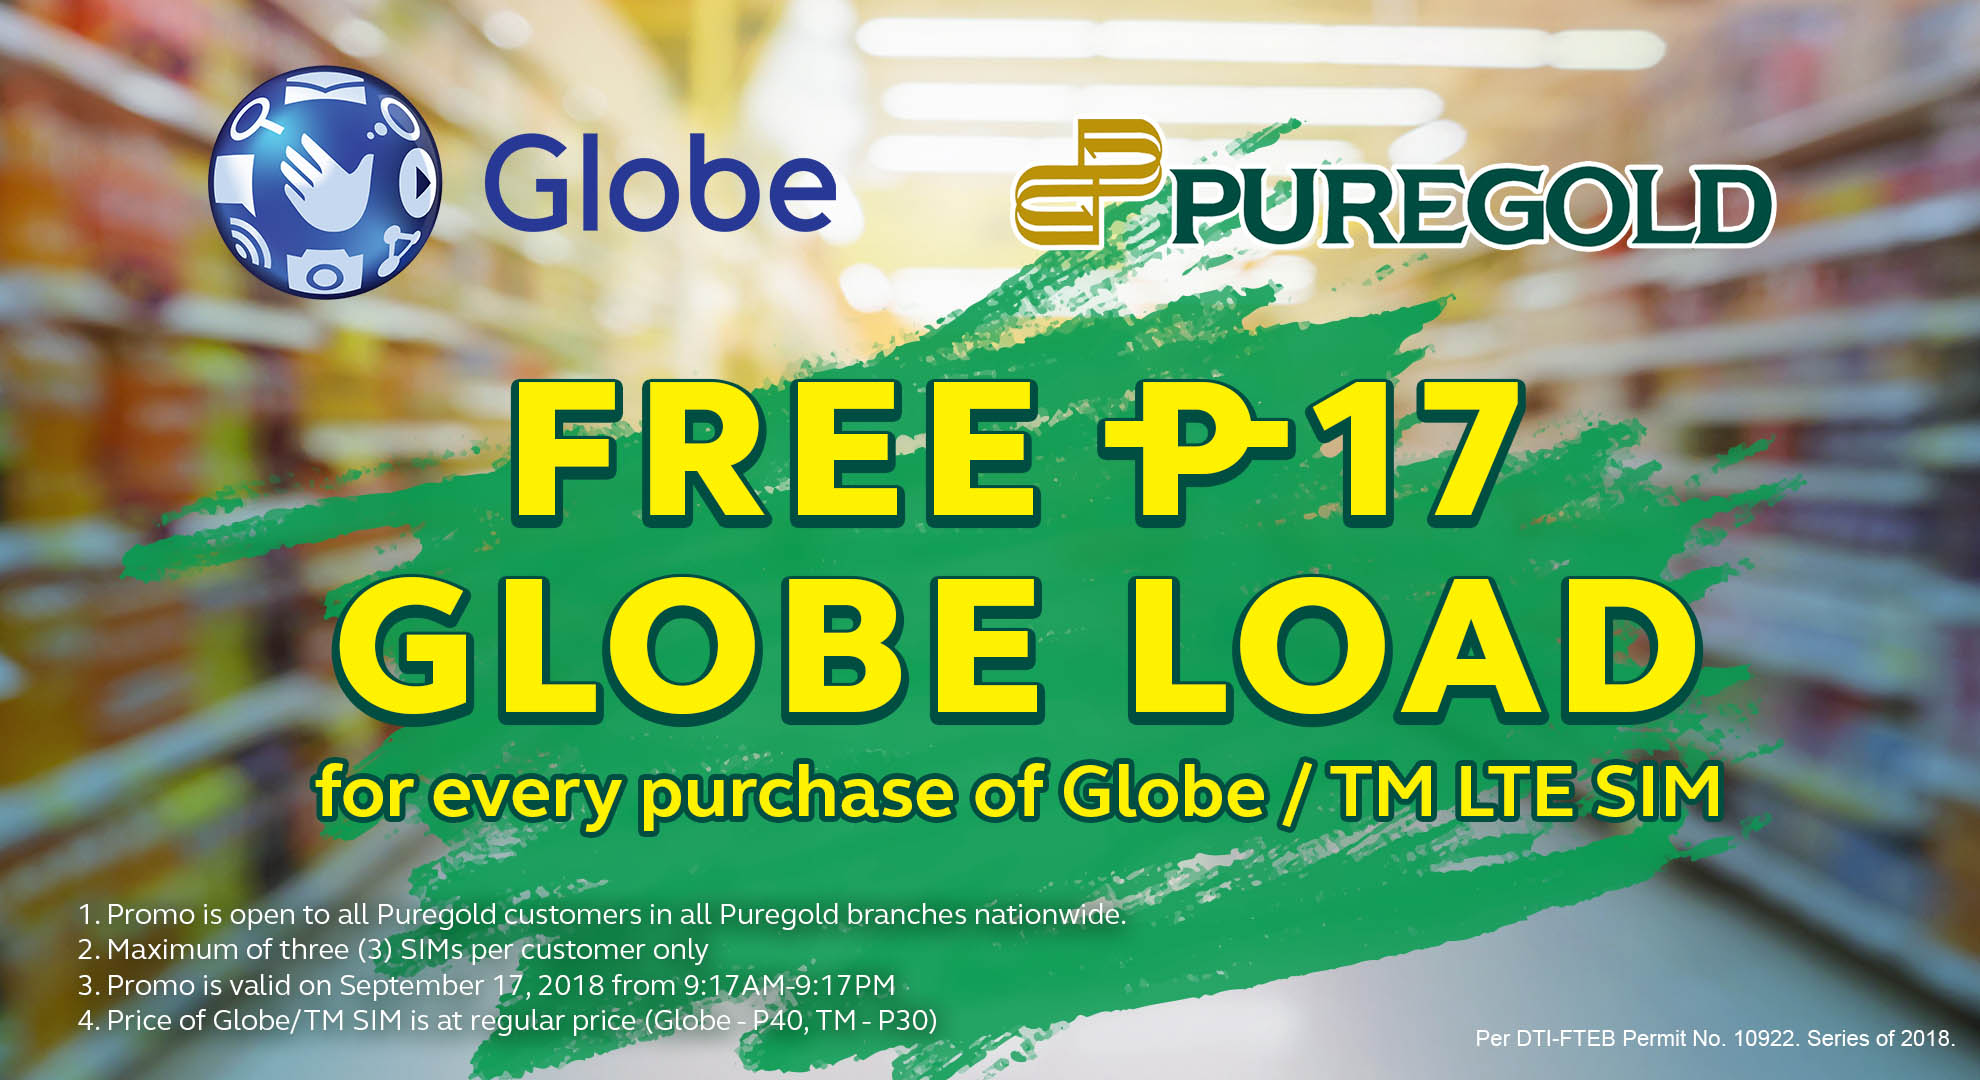 Super panalo deals and more as Globe and Puregold celebrate 917 Day